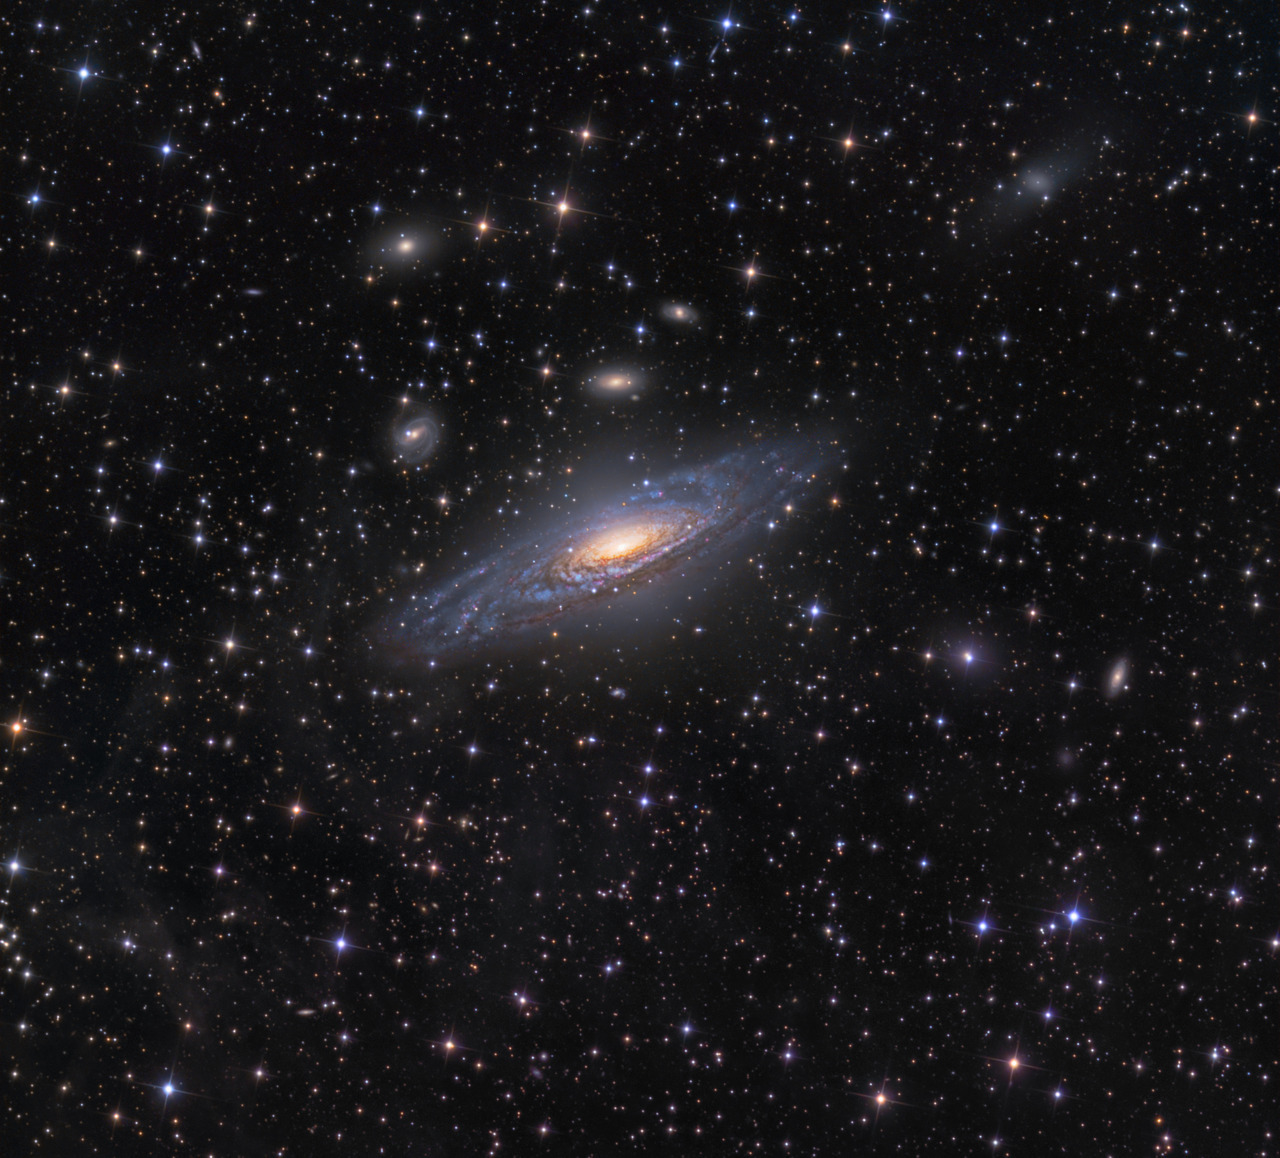 n-a-s-a:  NGC 7331 and Beyond Image Credit & Copyright: Ken Crawford